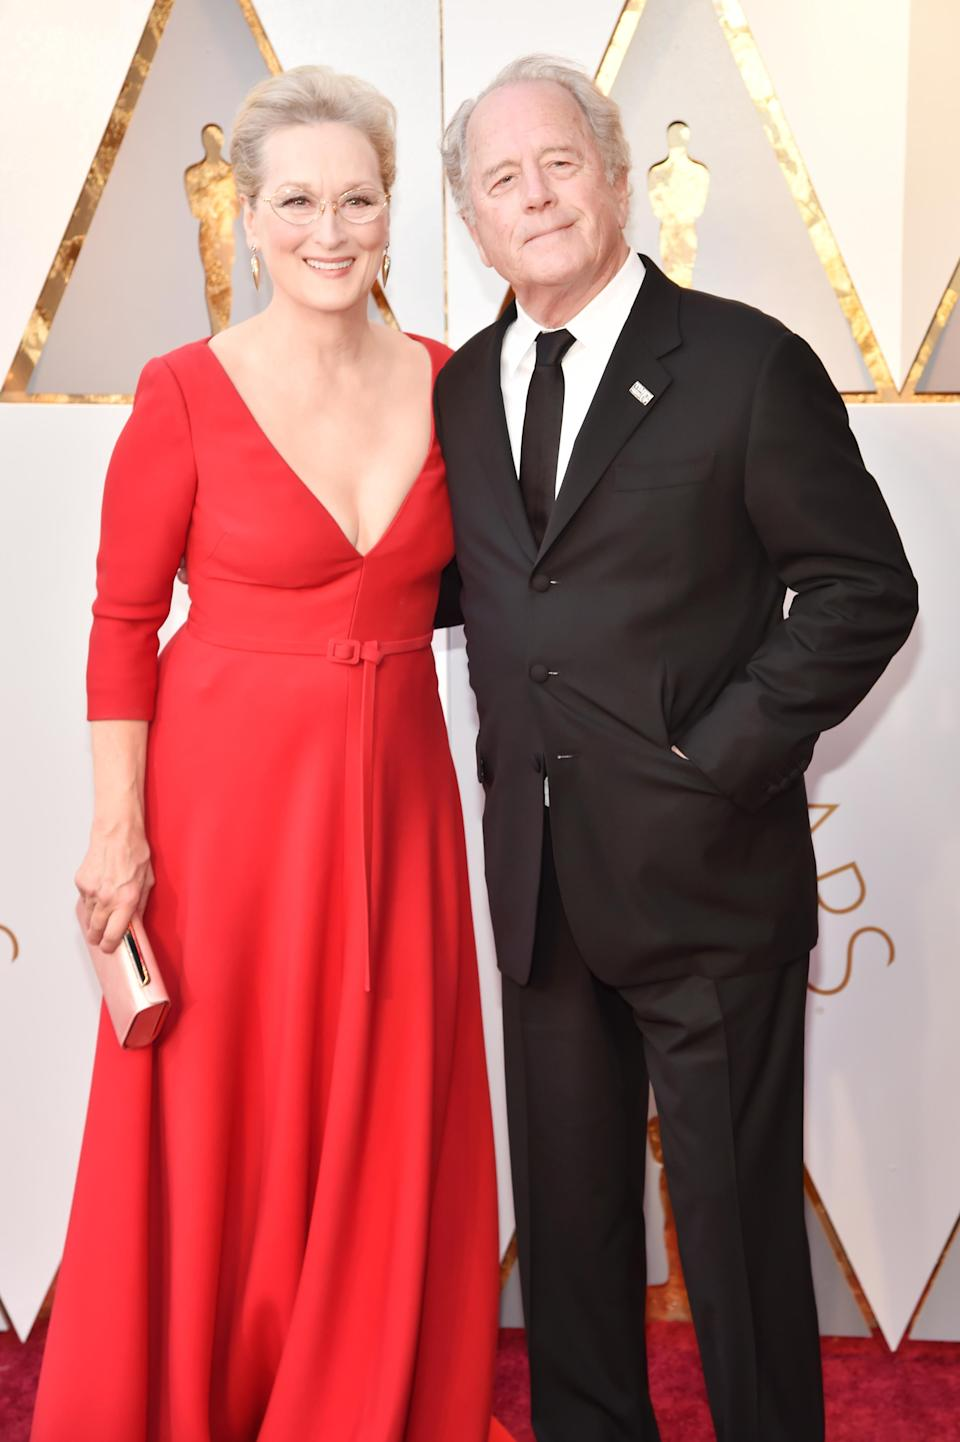 Streep's husband, Don Gummer, wore a #TimesUp pin on his lapel. (Photo: Kevin Mazur/WireImage)